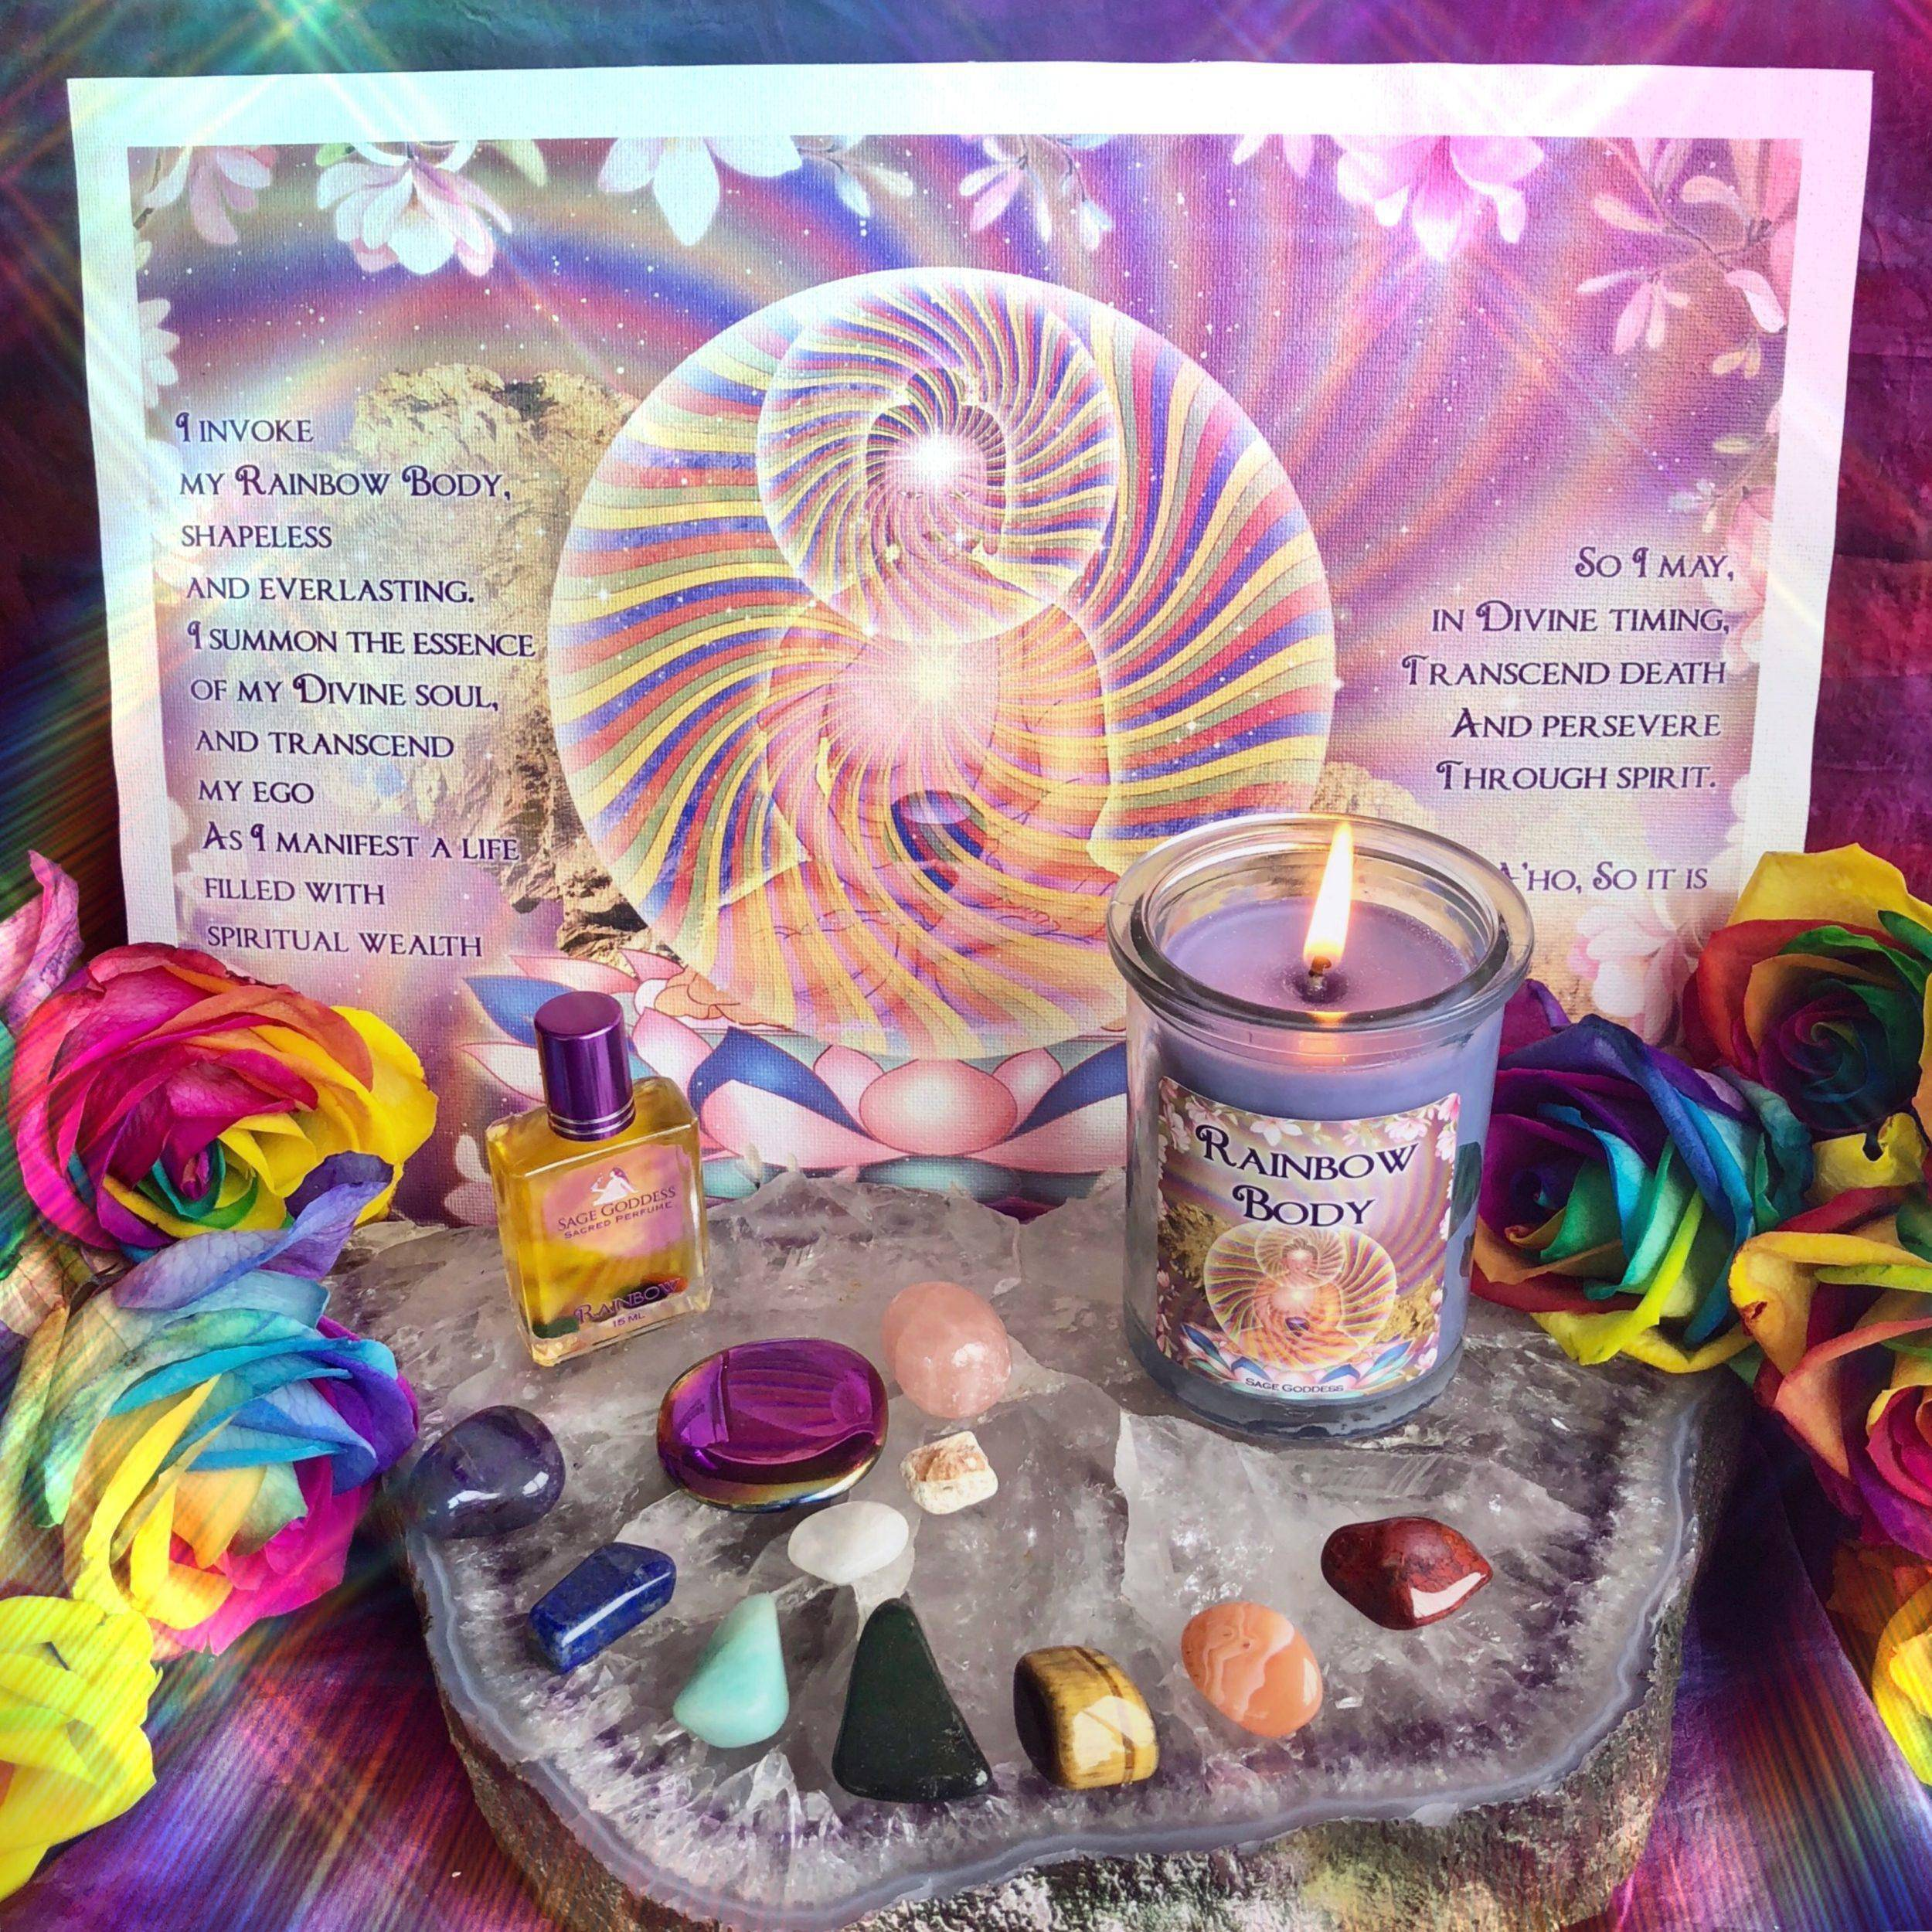 Magic_of_Tibet_Rainbow_Body_Transfiguration_Set_4of4_7_19